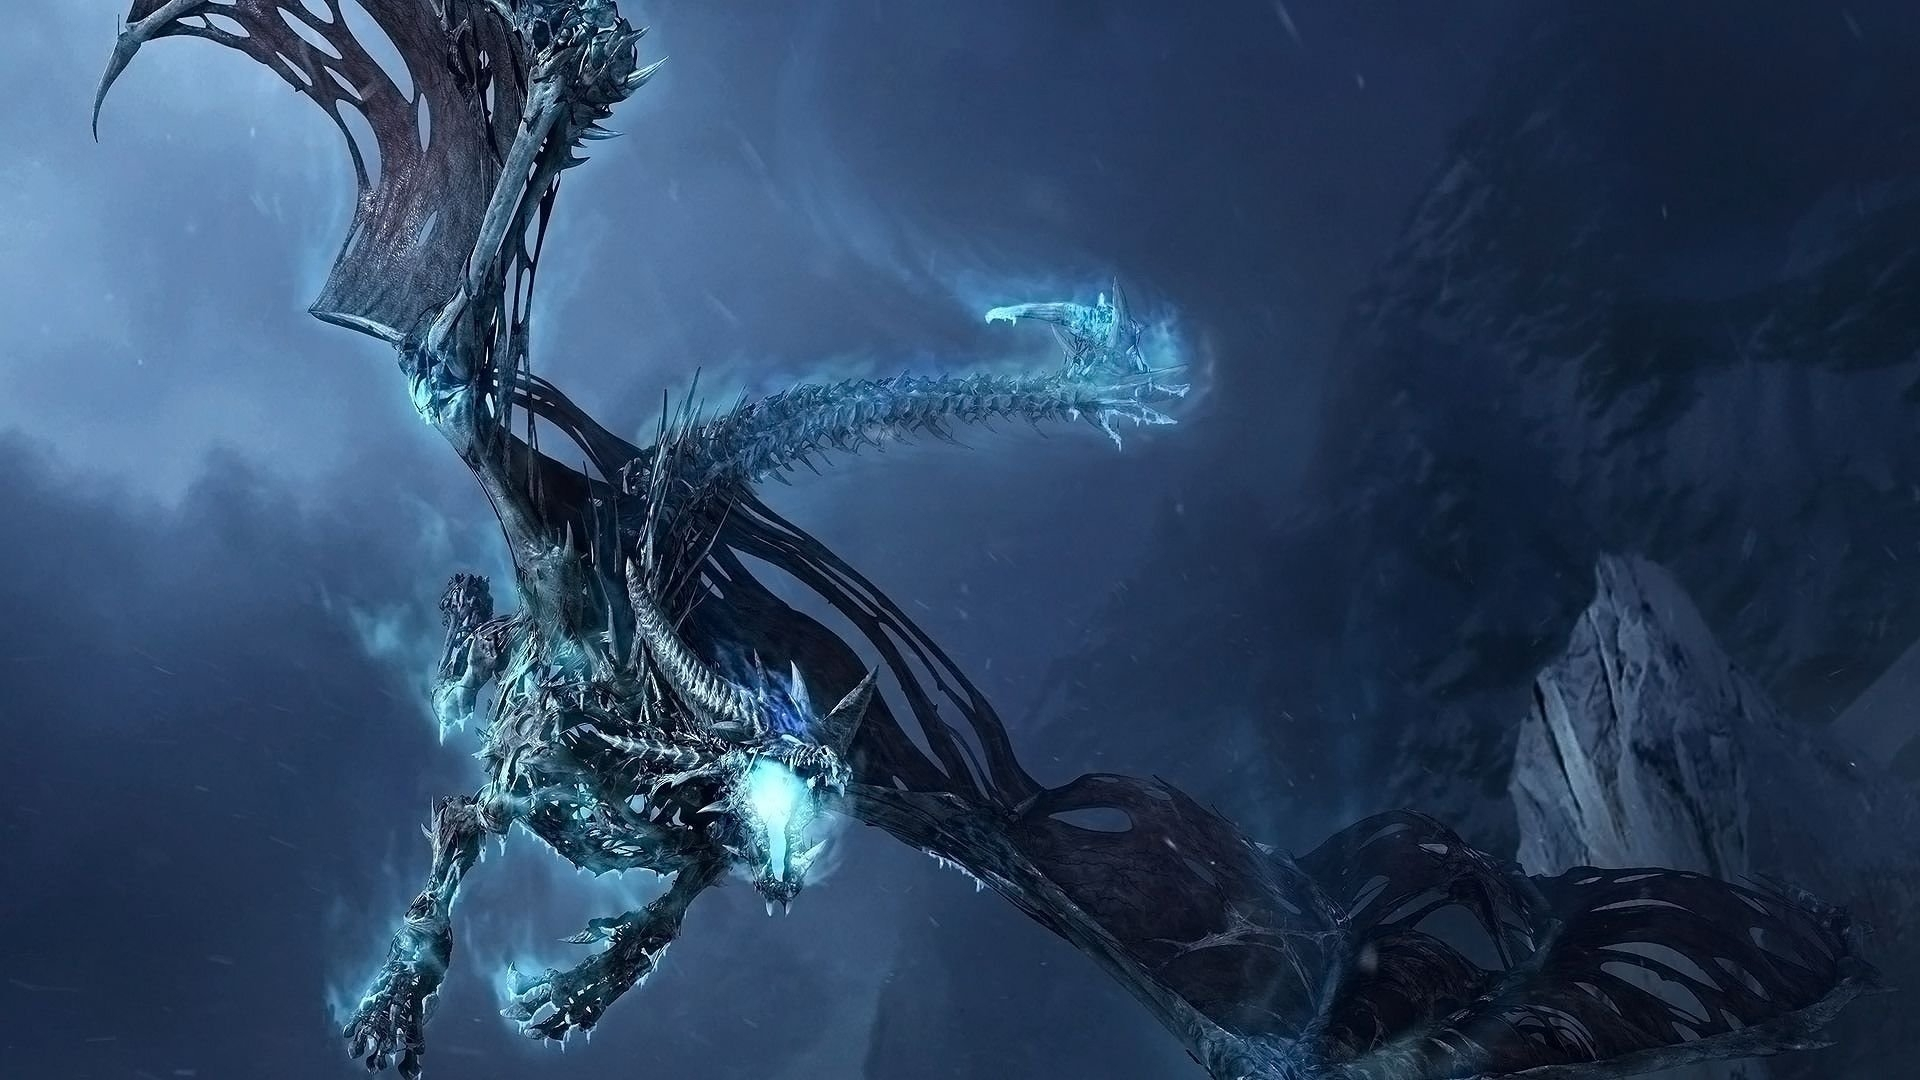 ice dragon - world of warcraft - walldevil